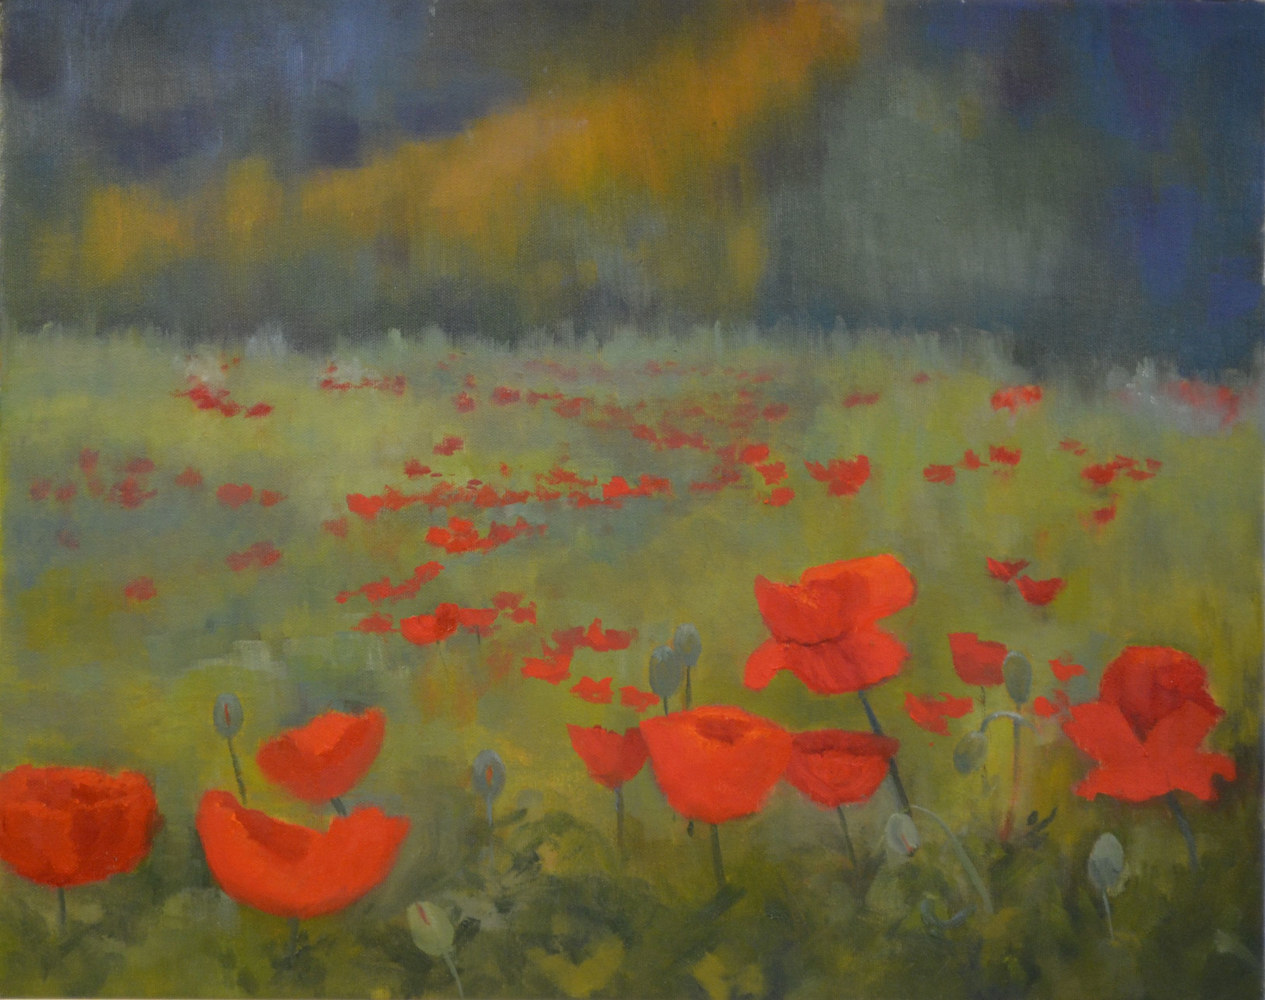 Drifting Reds - 16 by 20 - 30-1116 - oil on canvas by Patricia Savoie